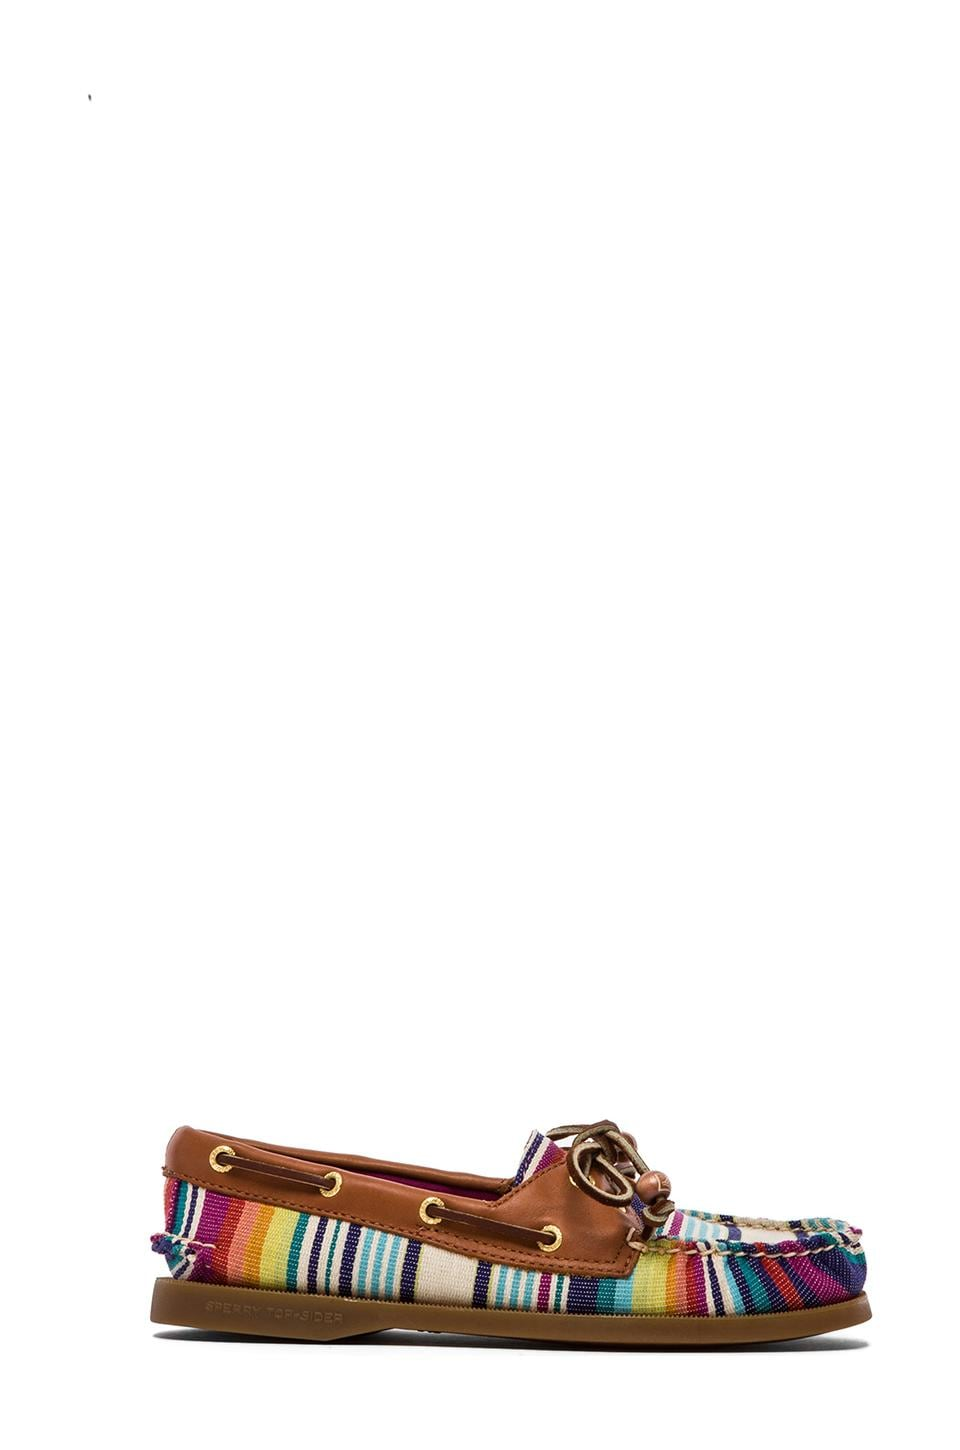 Sperry Top-Sider American Original A/O in Red Serape